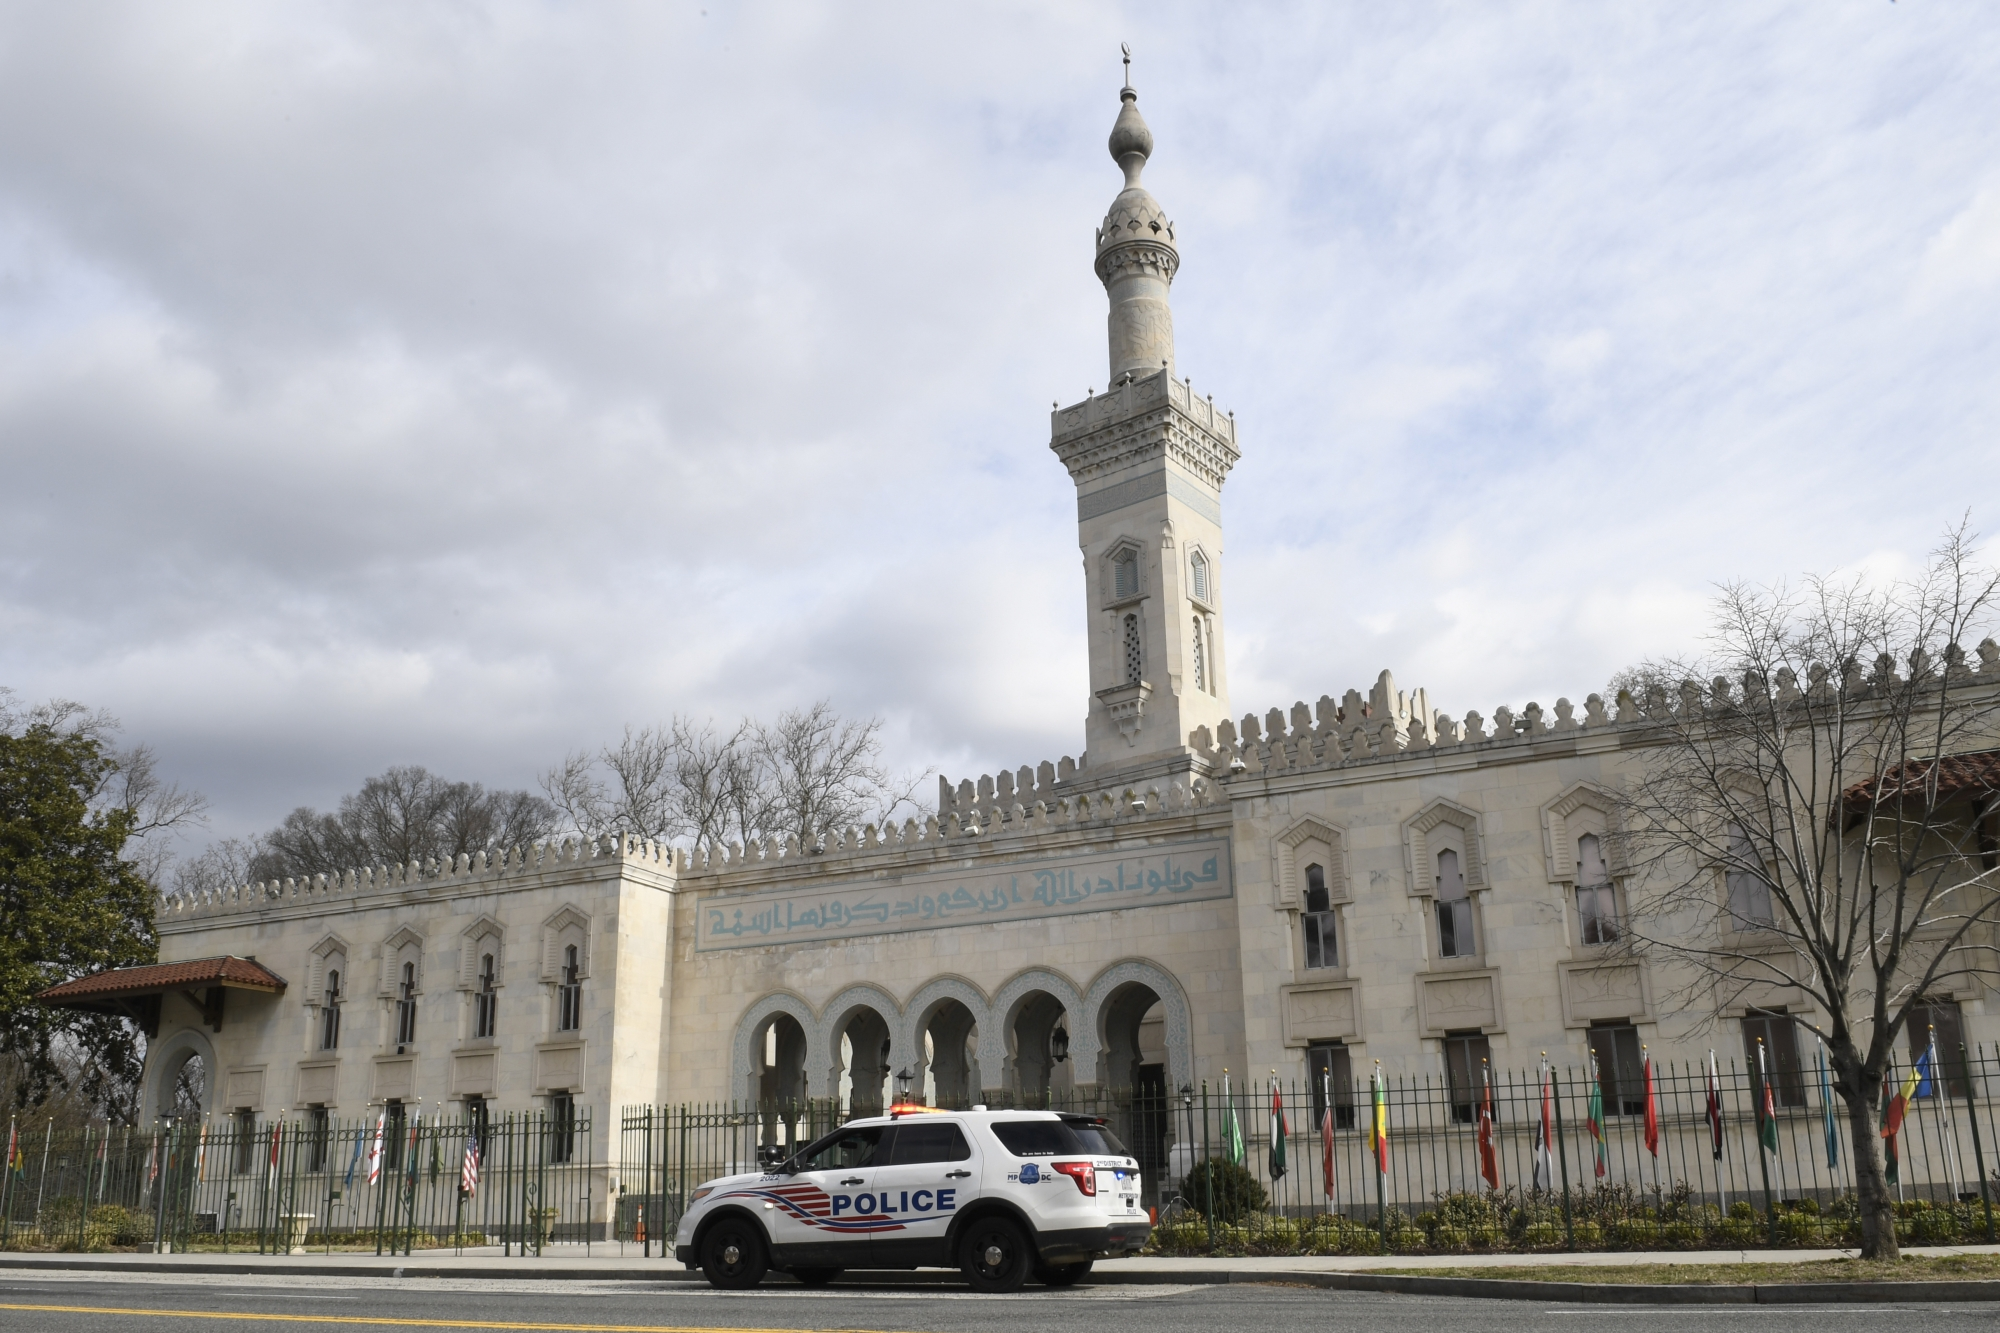 New Zealand Mosque: Police Increase Security Around Area Mosques After New